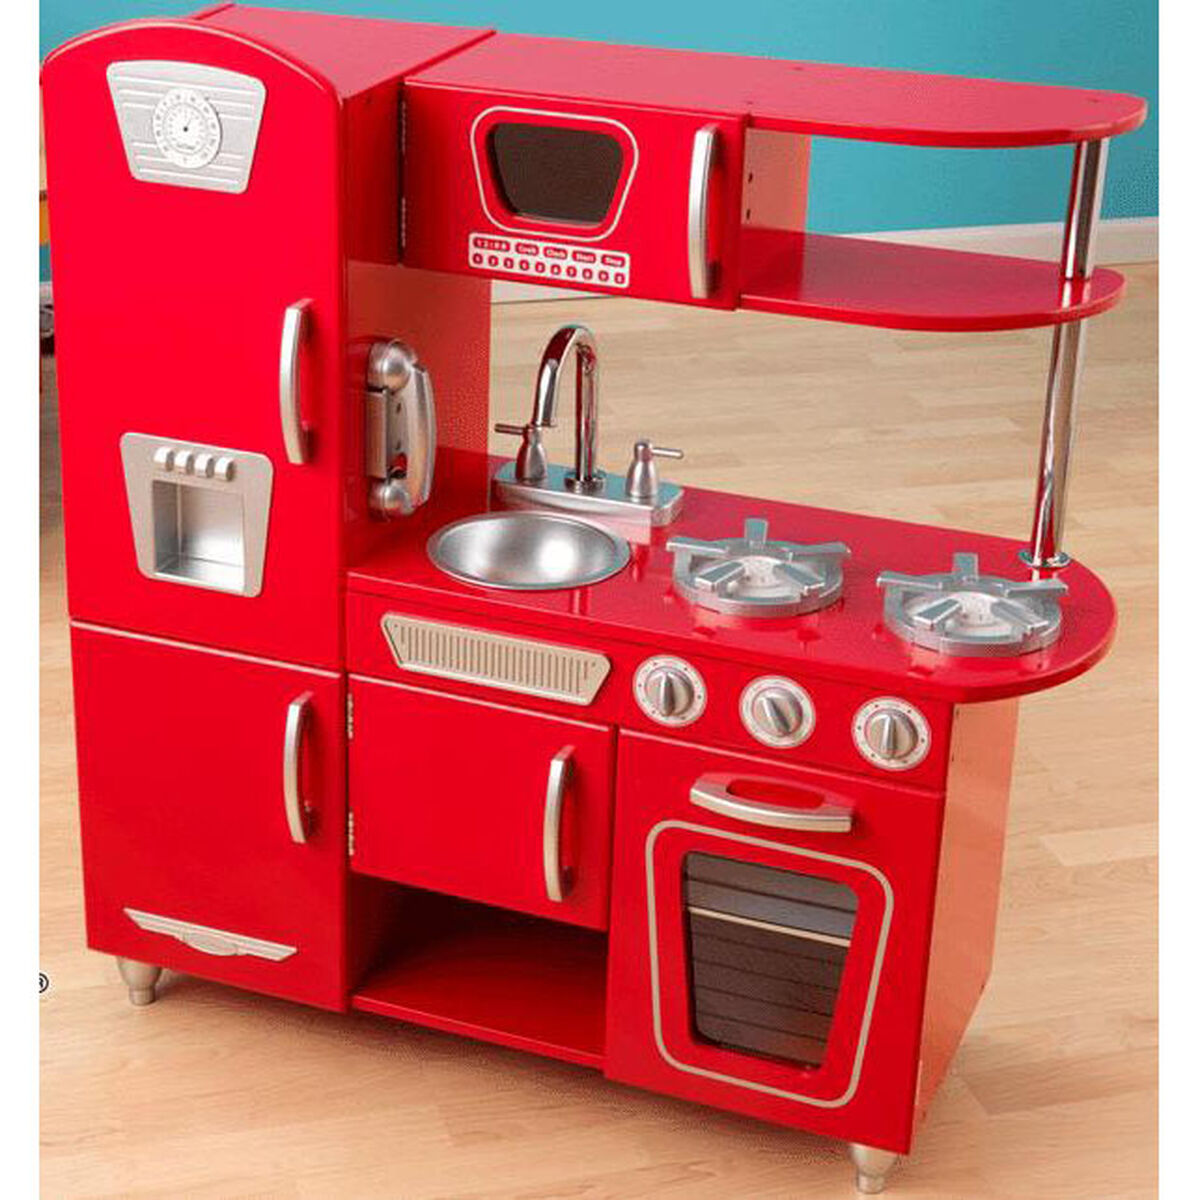 Our Kids Wooden Make Believe Vintage Kitchen Play Set Red Is On Now